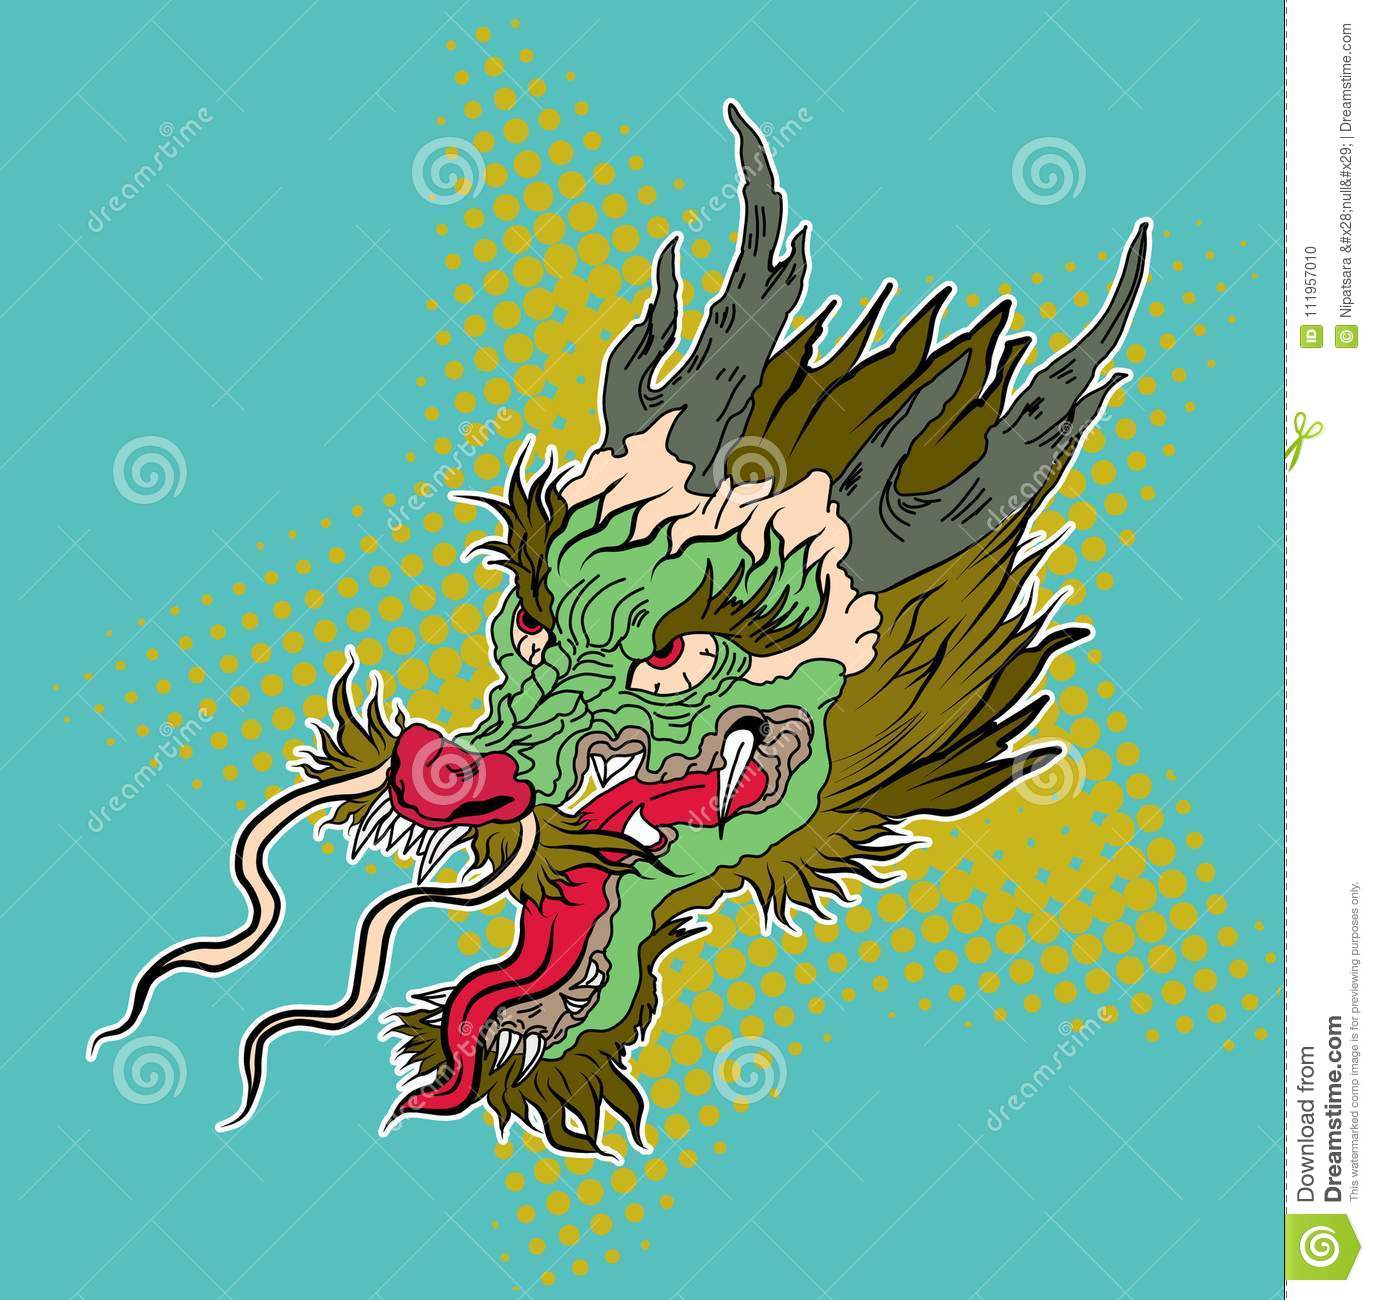 1479e3de356 Comic art and retro style roaring dragon on halftone color vector.Hand  drawn Japanese dragon head on white background.doodle art and Fairytale  animal ...